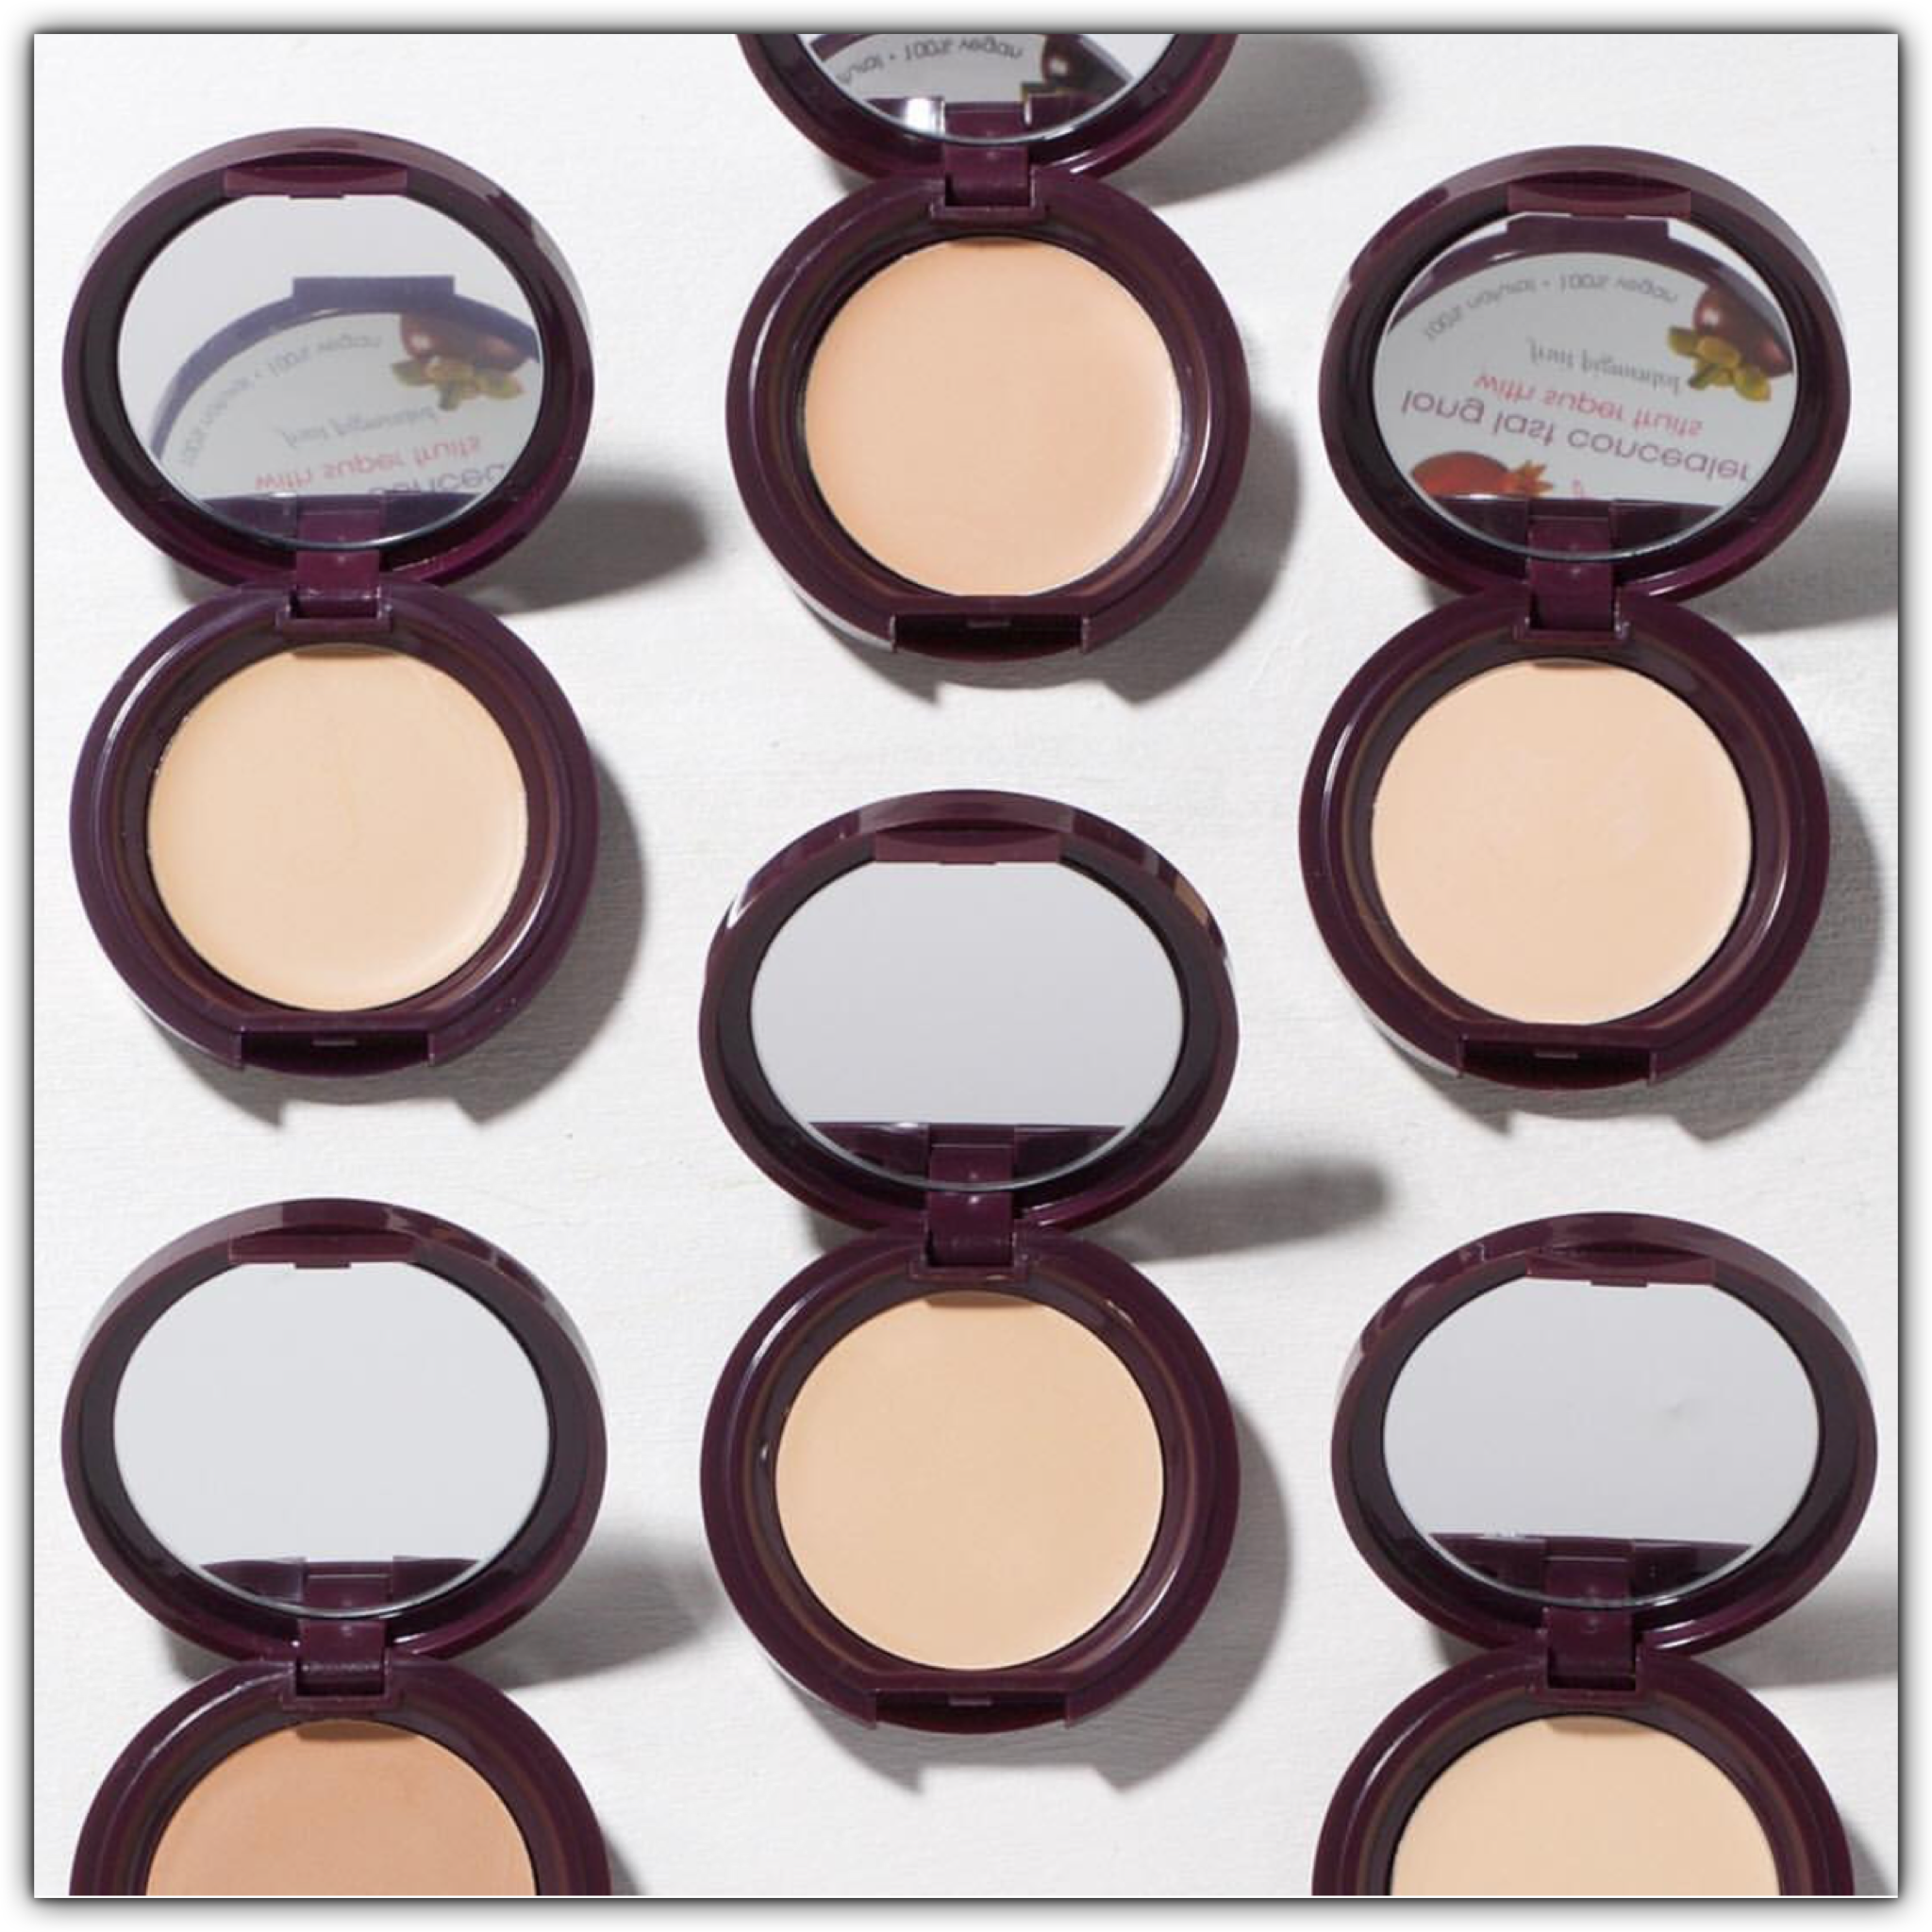 100 Percent Pure Fruit Pigmented Long Last Concealer All